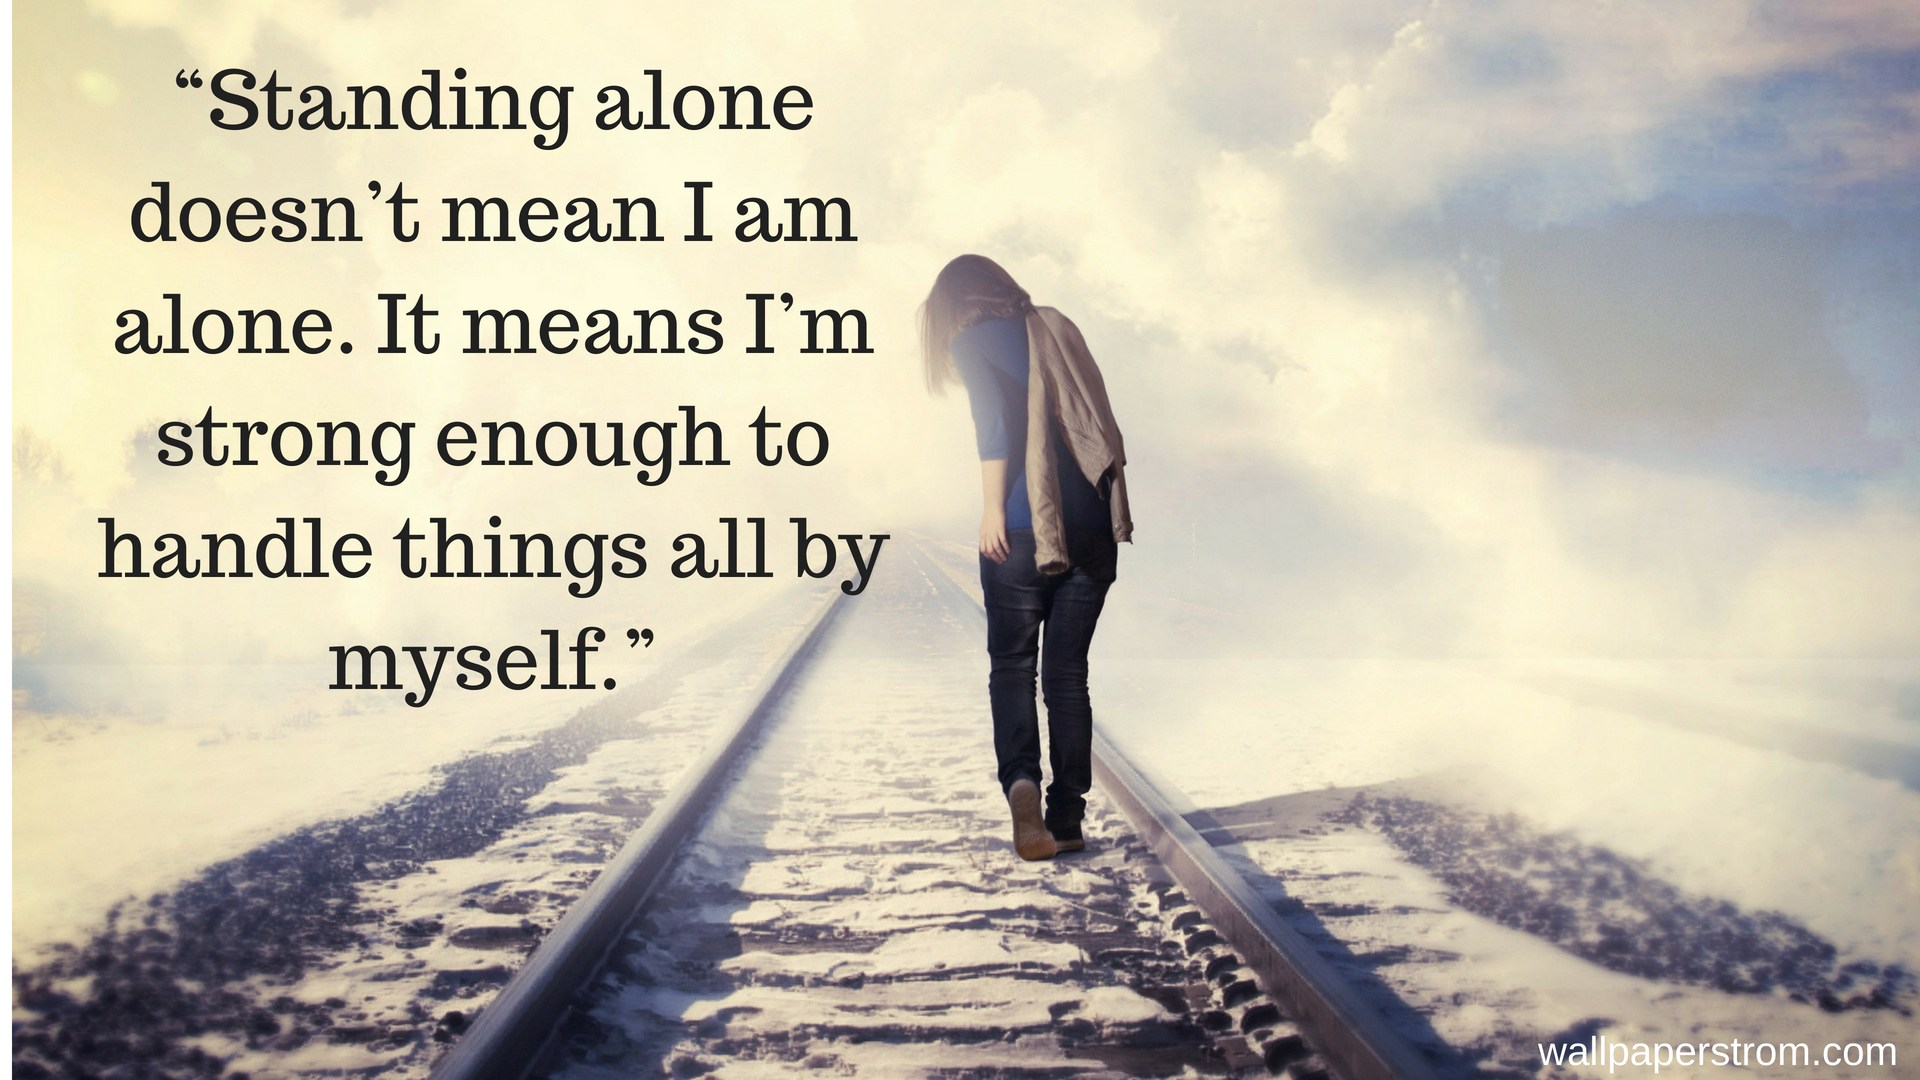 Alone Quotes Hd Wallpapers - Alone Whatsapp Dp For Girl With Quotes - HD Wallpaper